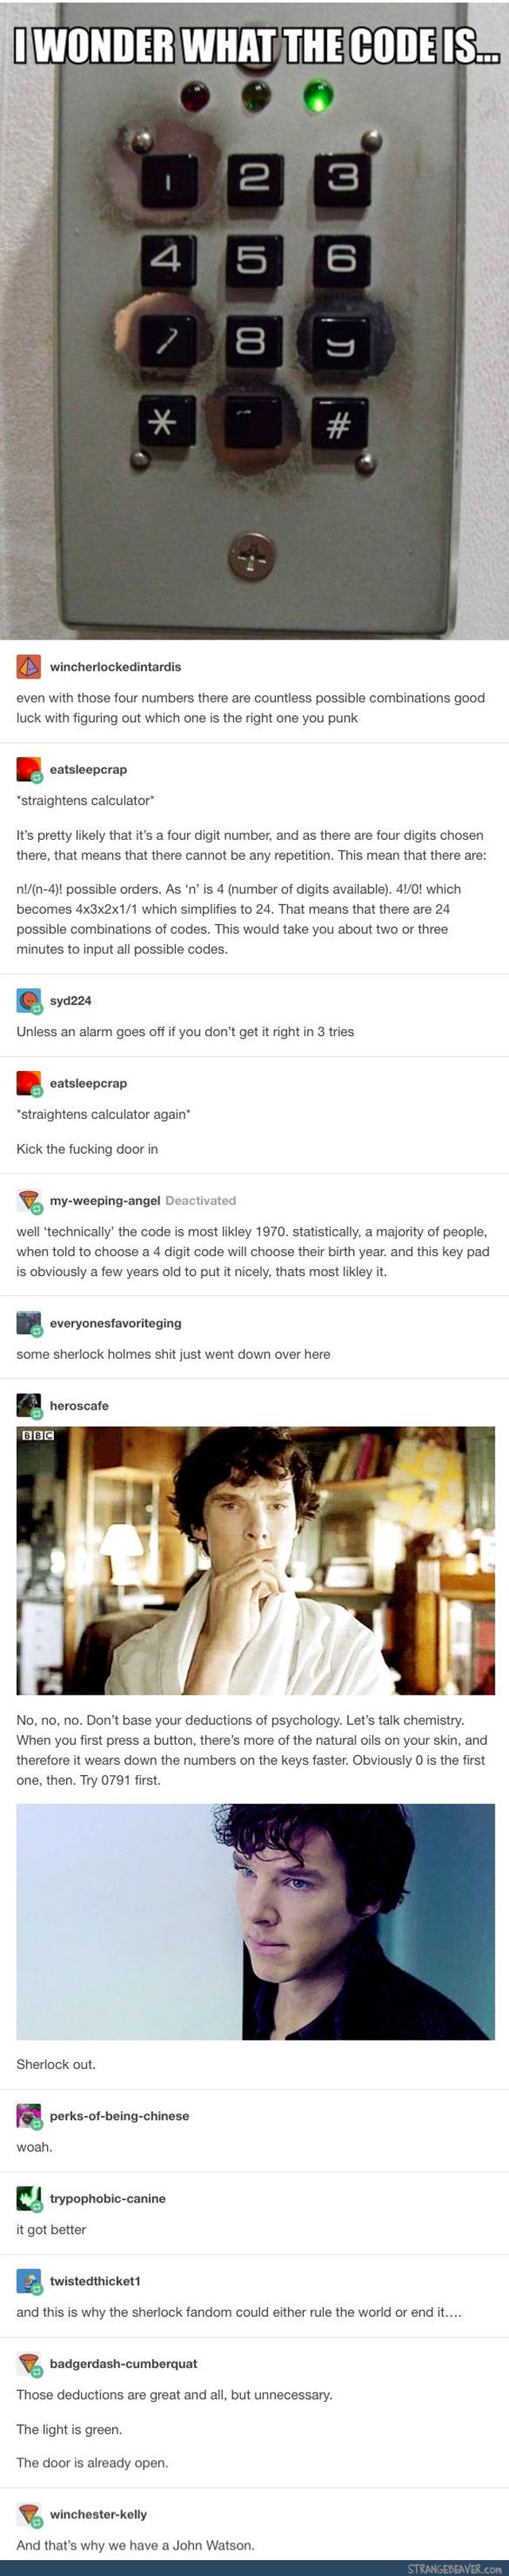 I am both Sherlock and Watson! I literally sat and stared at this image for a few seconds and deduced that the passcode was 0179 although the door was already open due to the green light.